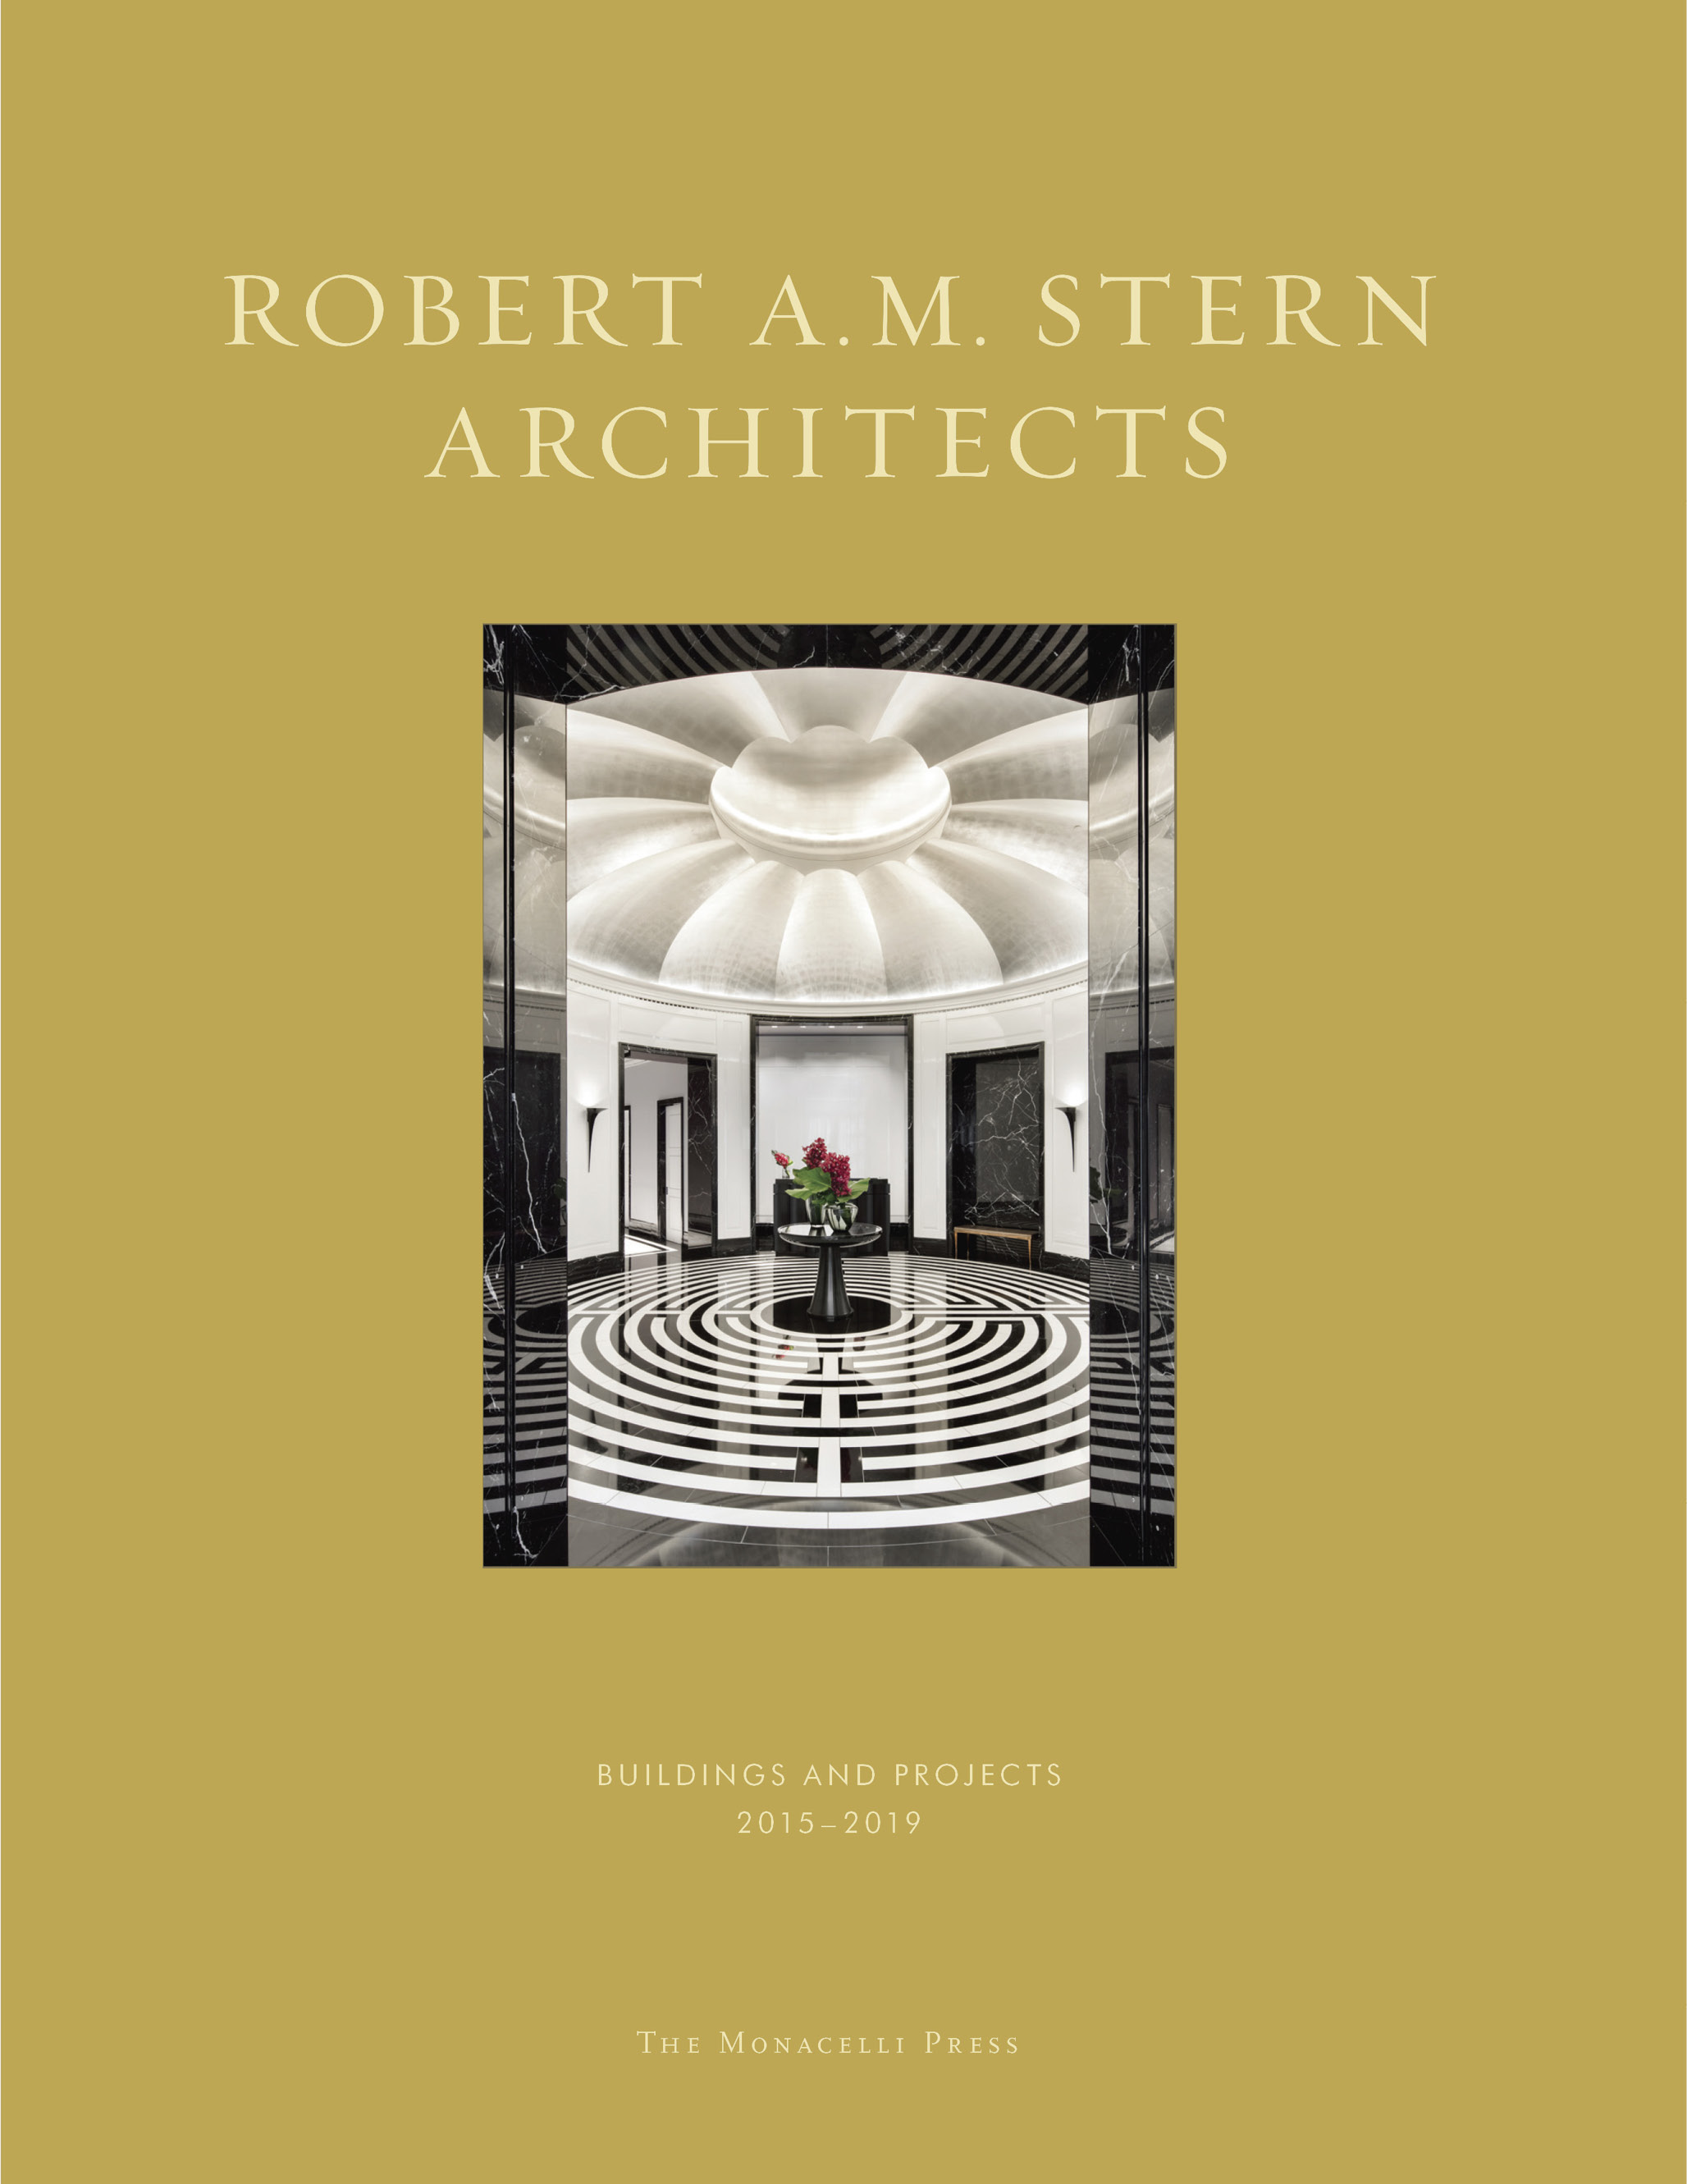 Robert A.M. Stern Architects: Buildings and Projects 2015 - 2019